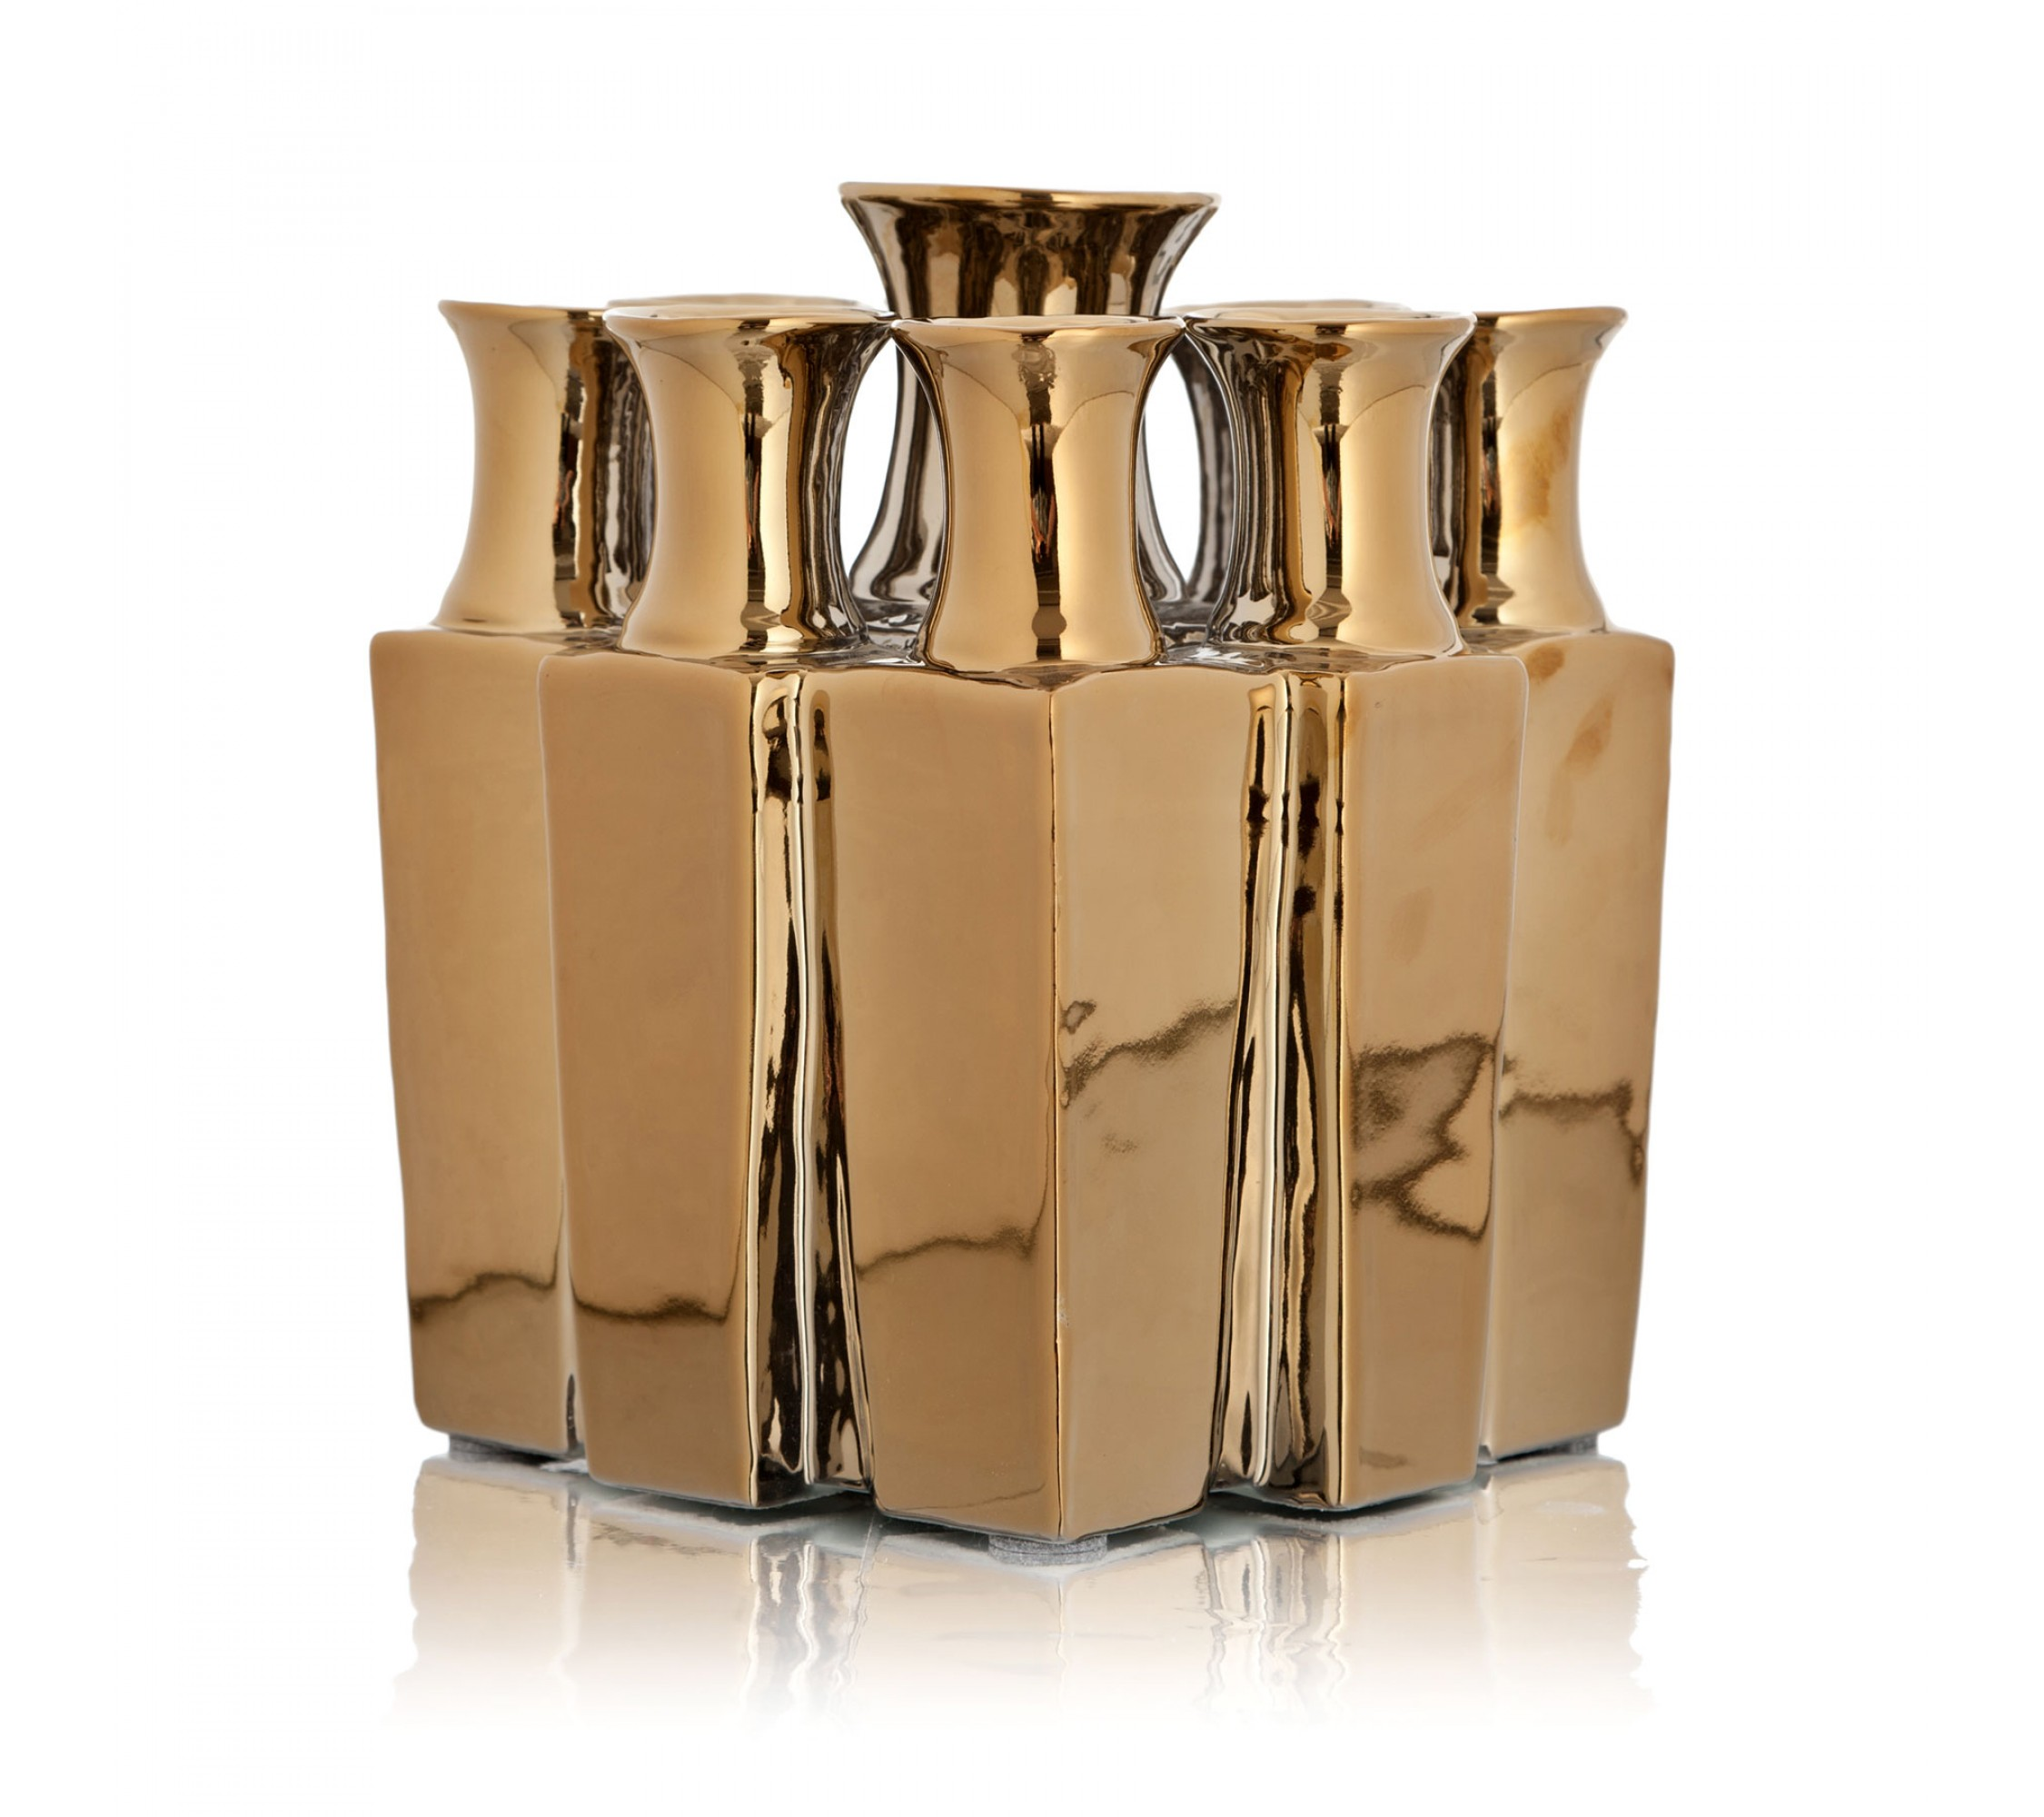 Vase Keramik - Collars Square Gold